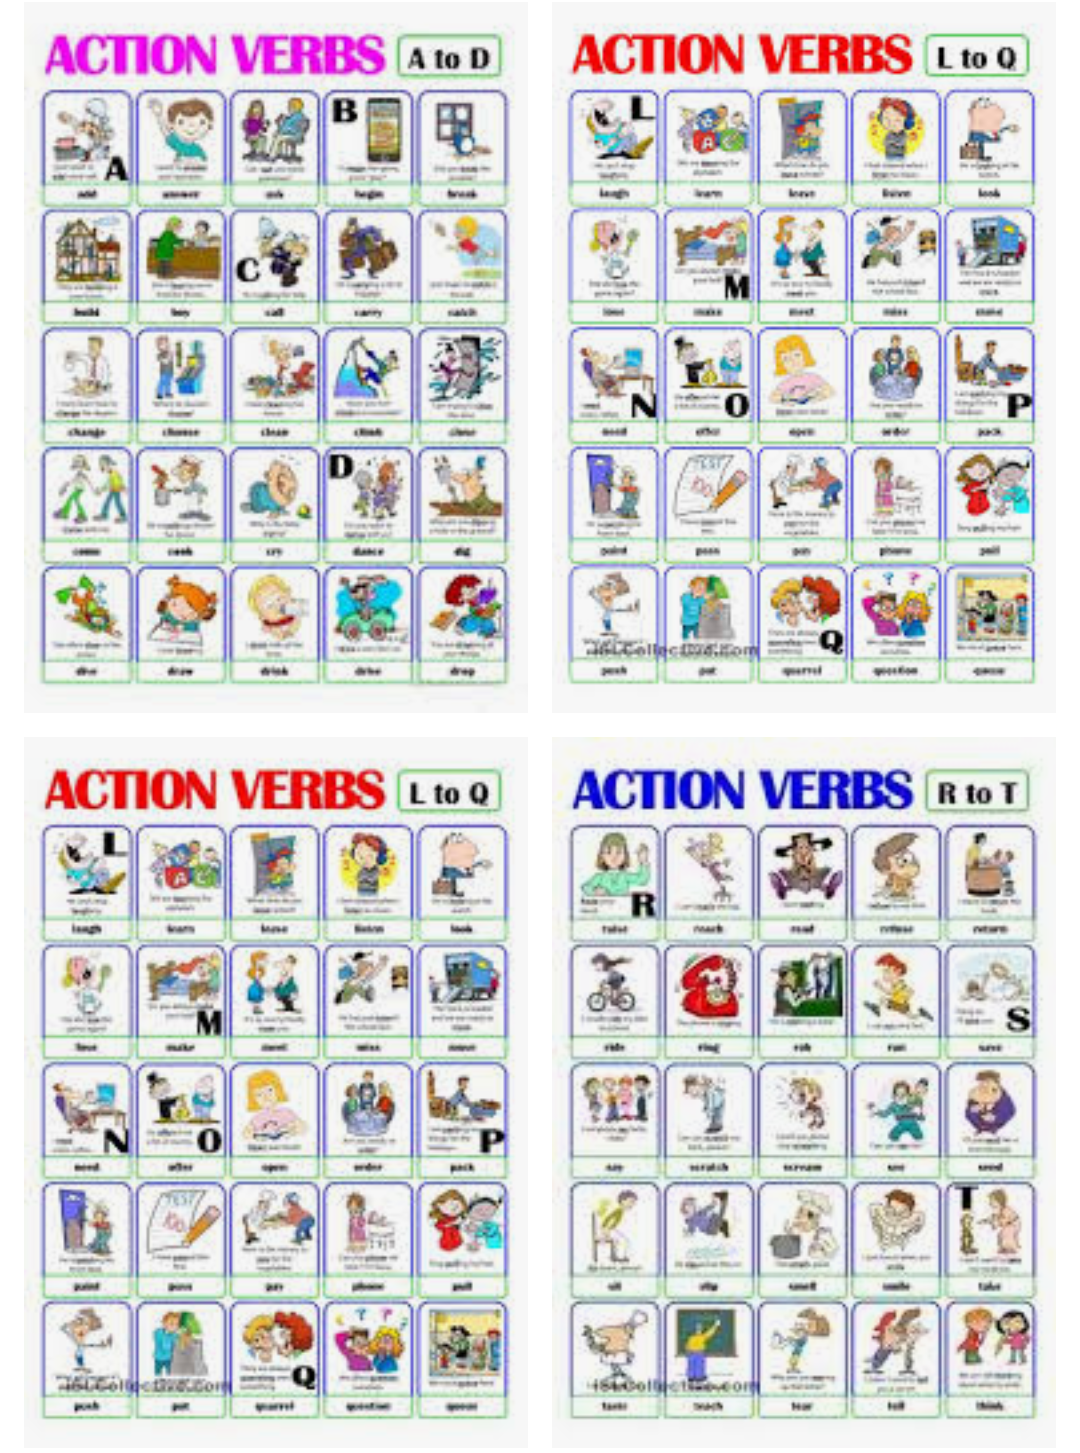 Download Pictionary Action Verbs A To Z Word Format